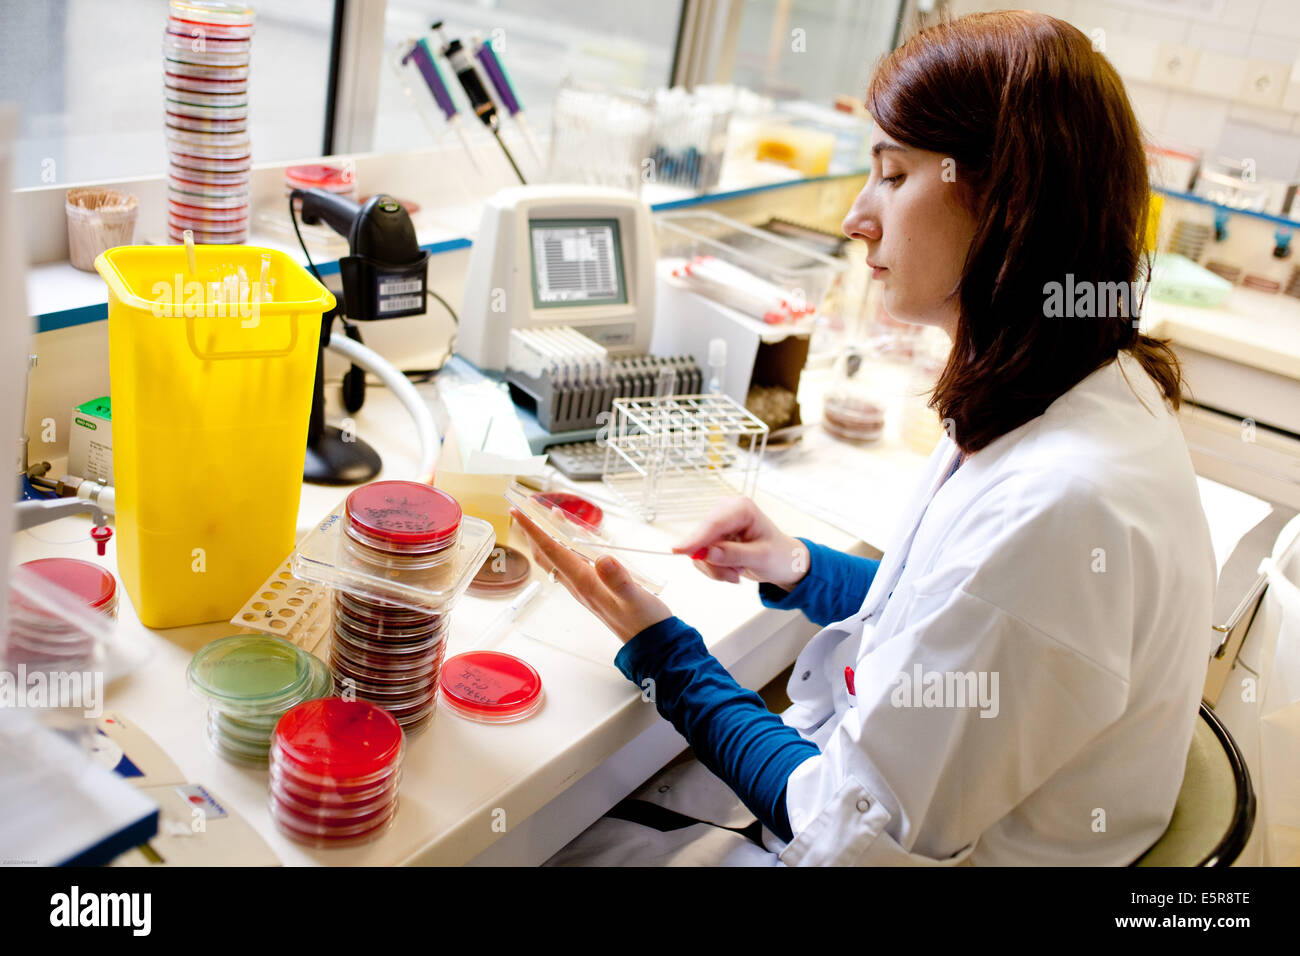 Bacteriology laboratory, Limoges hospital, France. - Stock Image